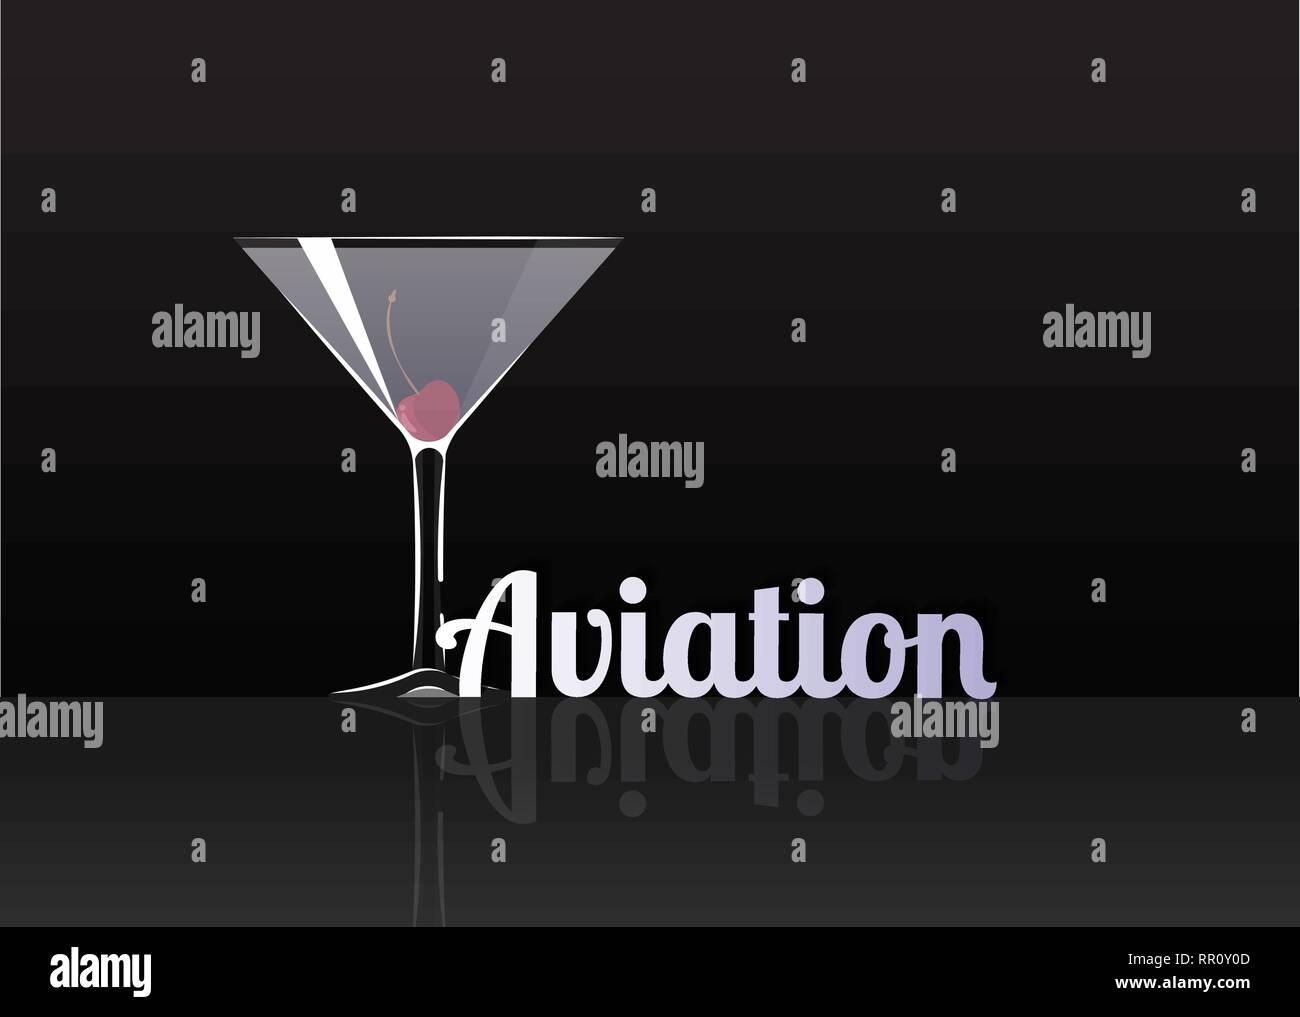 Official cocktail icon, The Unforgettable Aviation cartoon illustration for bar or restoration  alcohol menu in elegant style on mirrored surface. - Stock Image